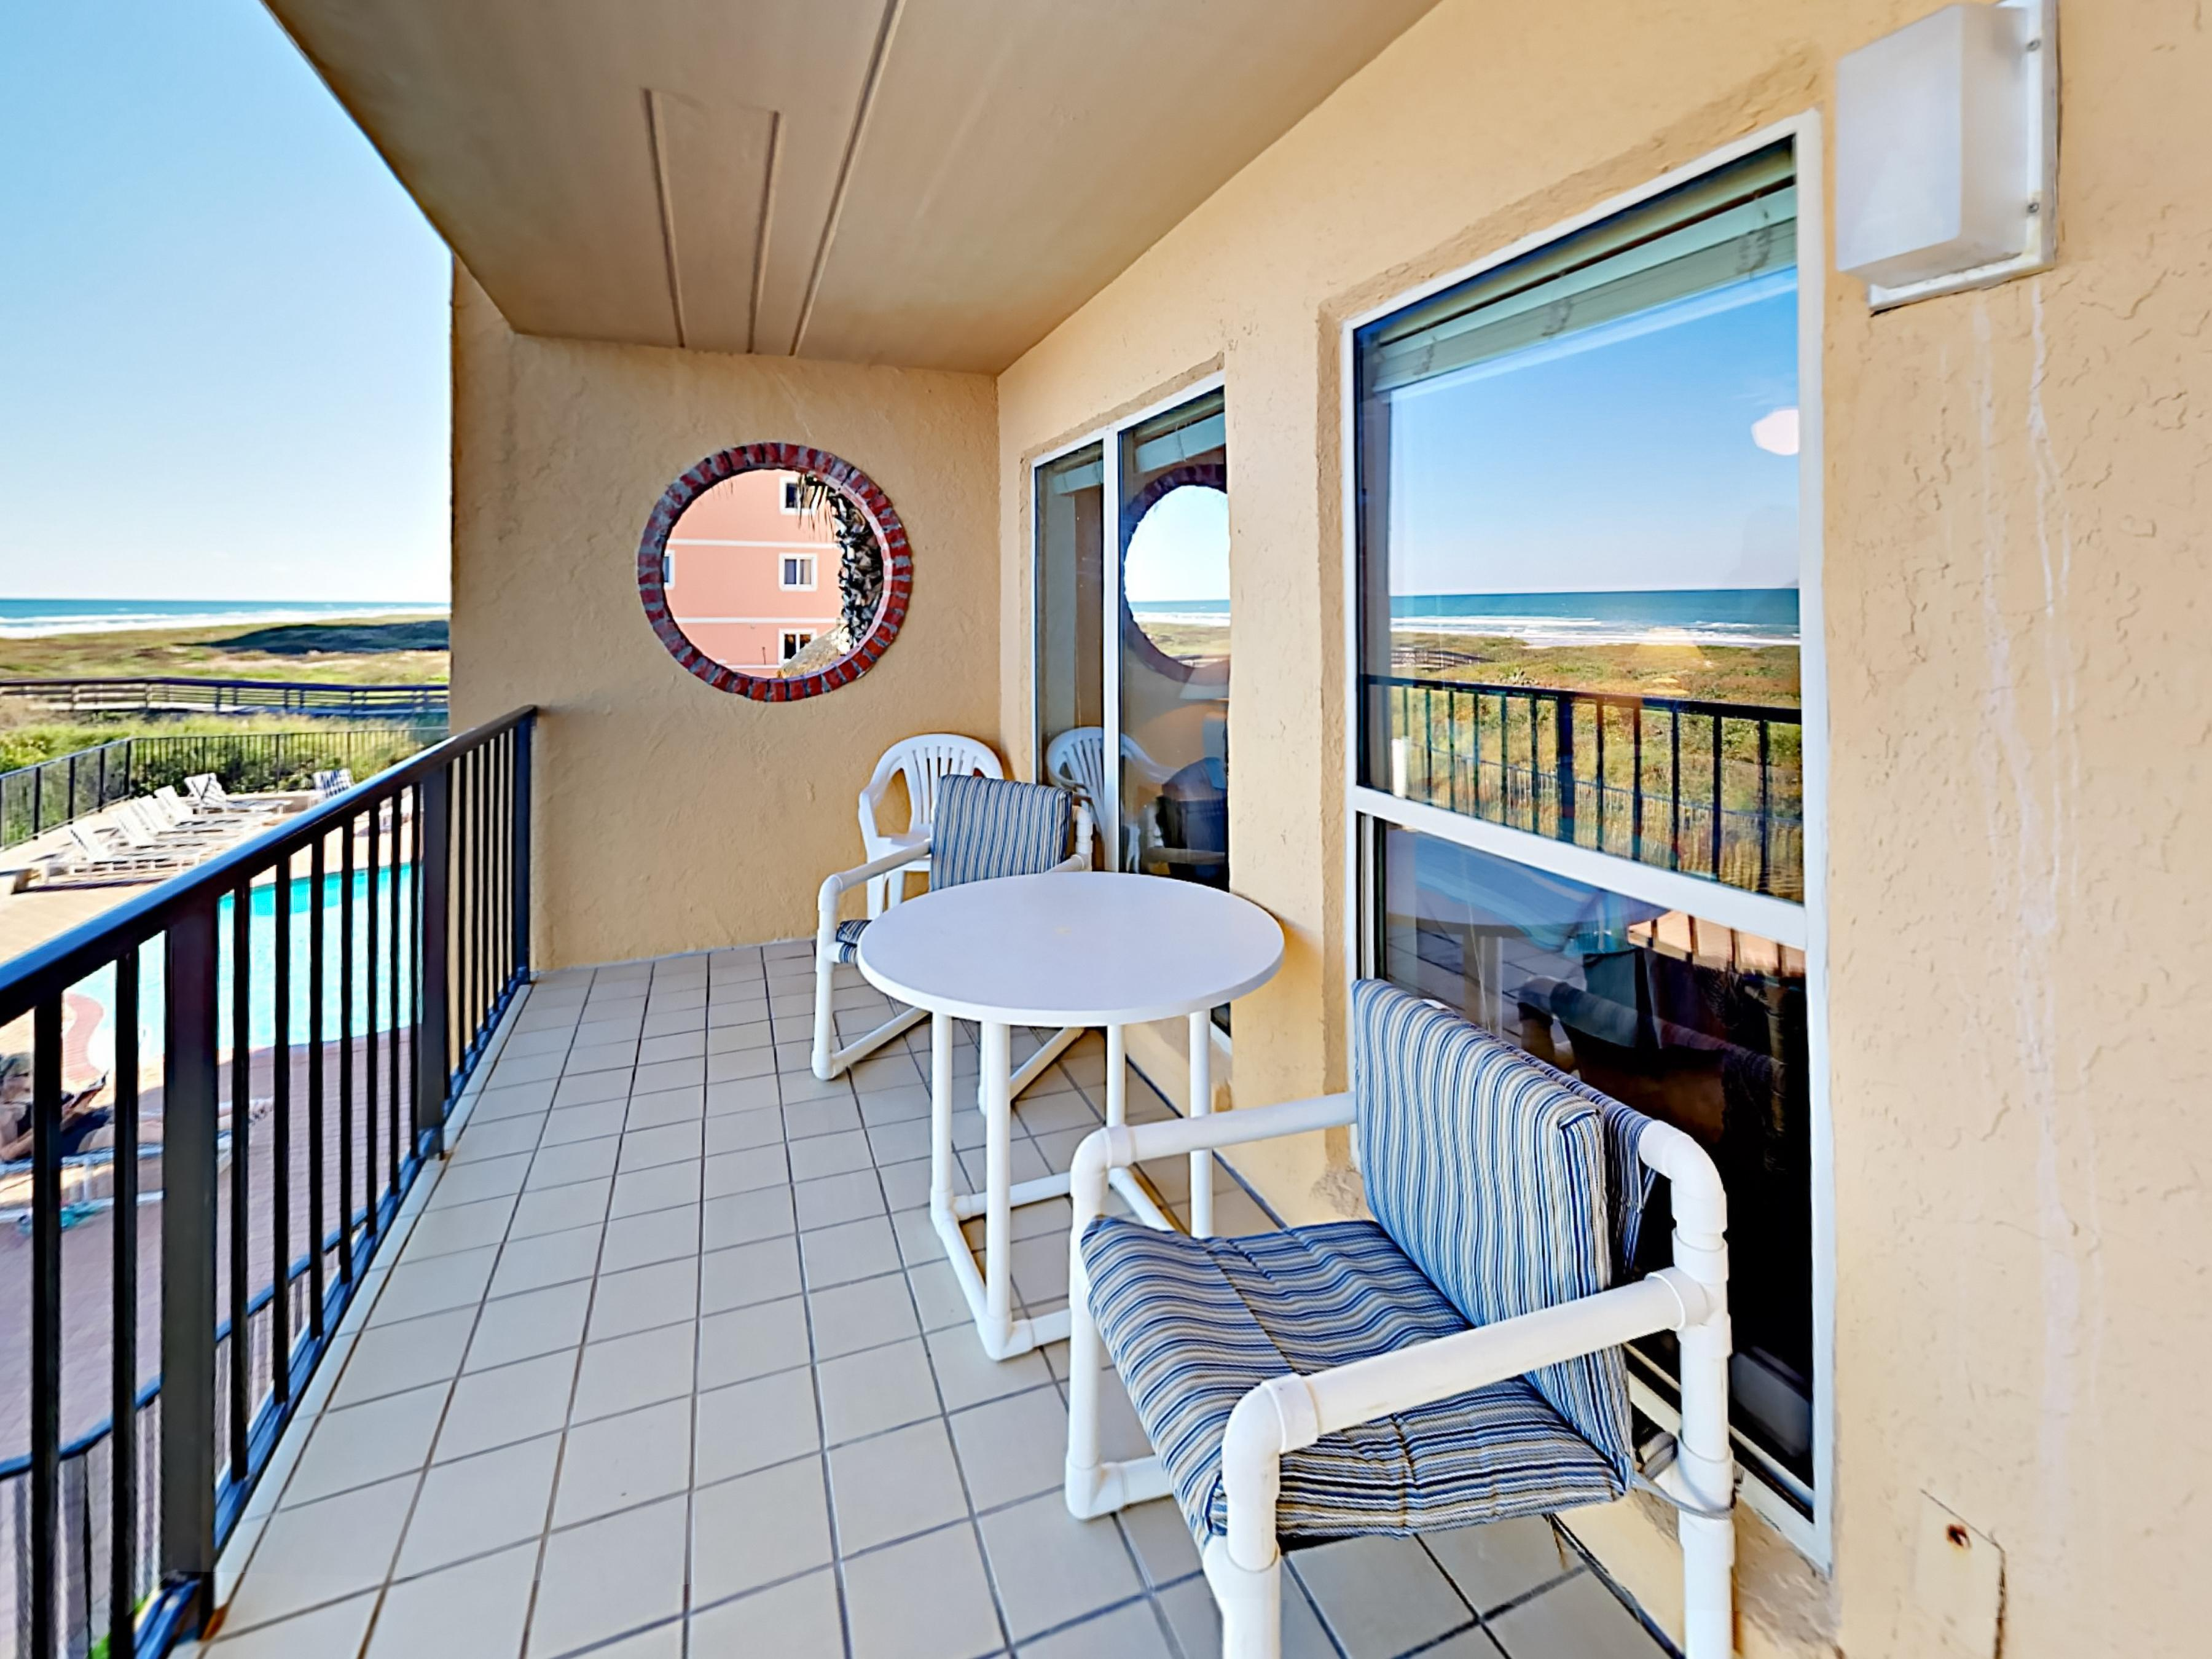 Welcome to your condo at South Padre Island! Enjoy panoramic views overlooking the Gulf of Mexico from the private balcony.